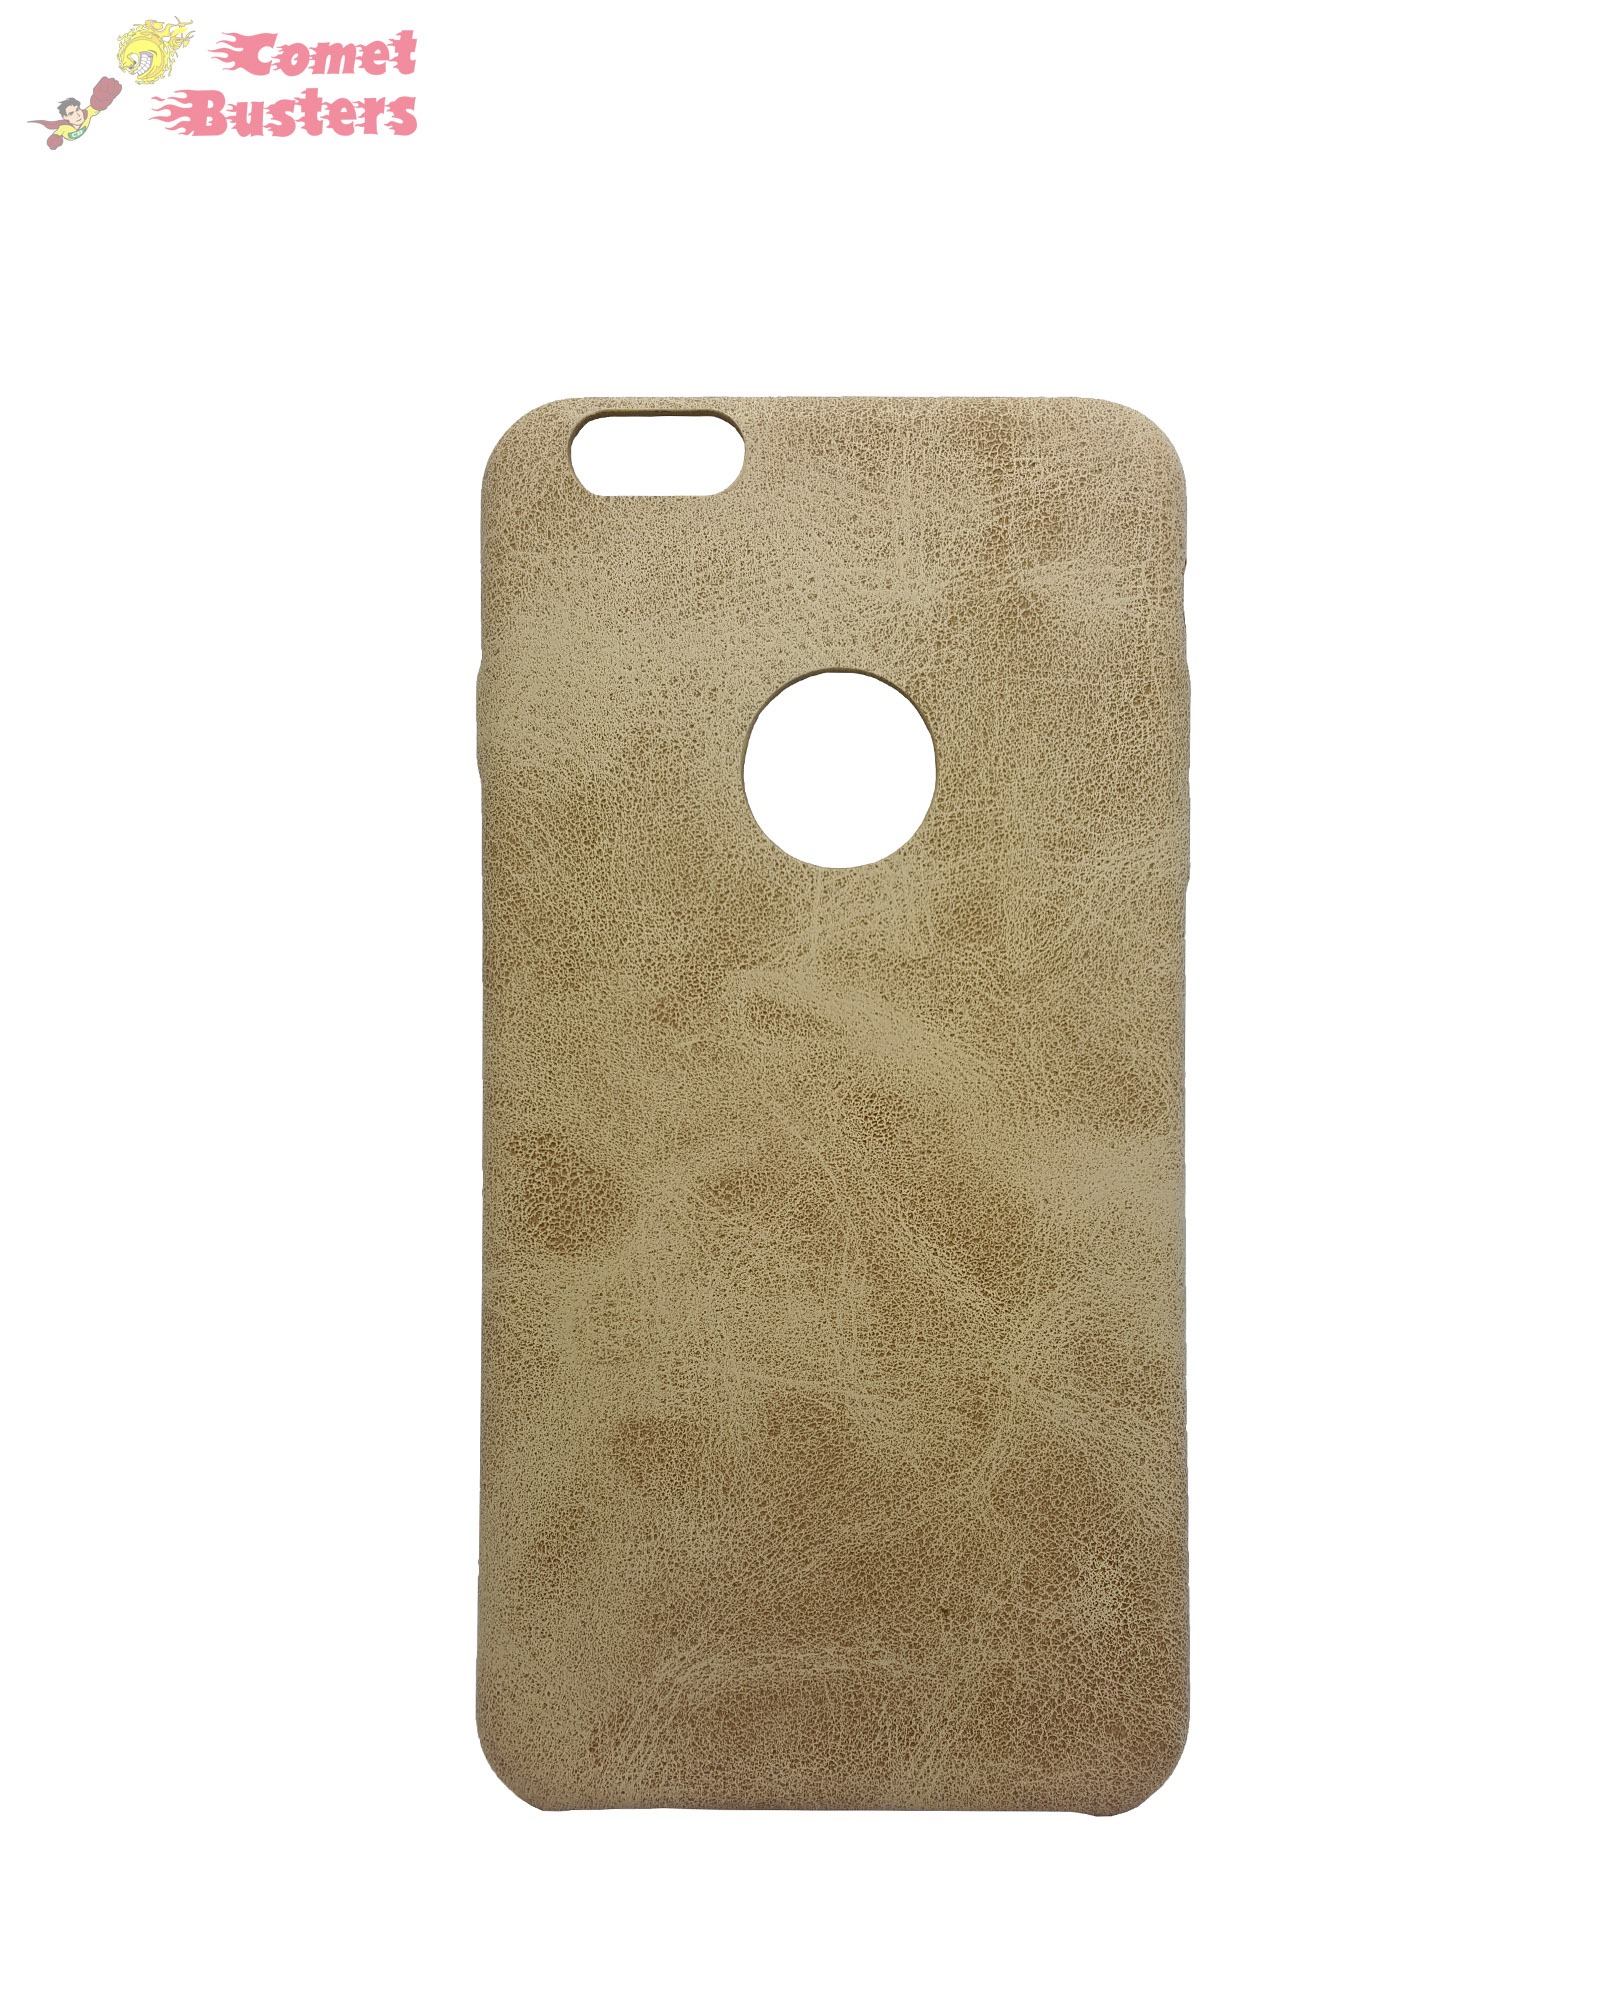 Apple iPhone 6 Plus Back Cover Case  Leather  